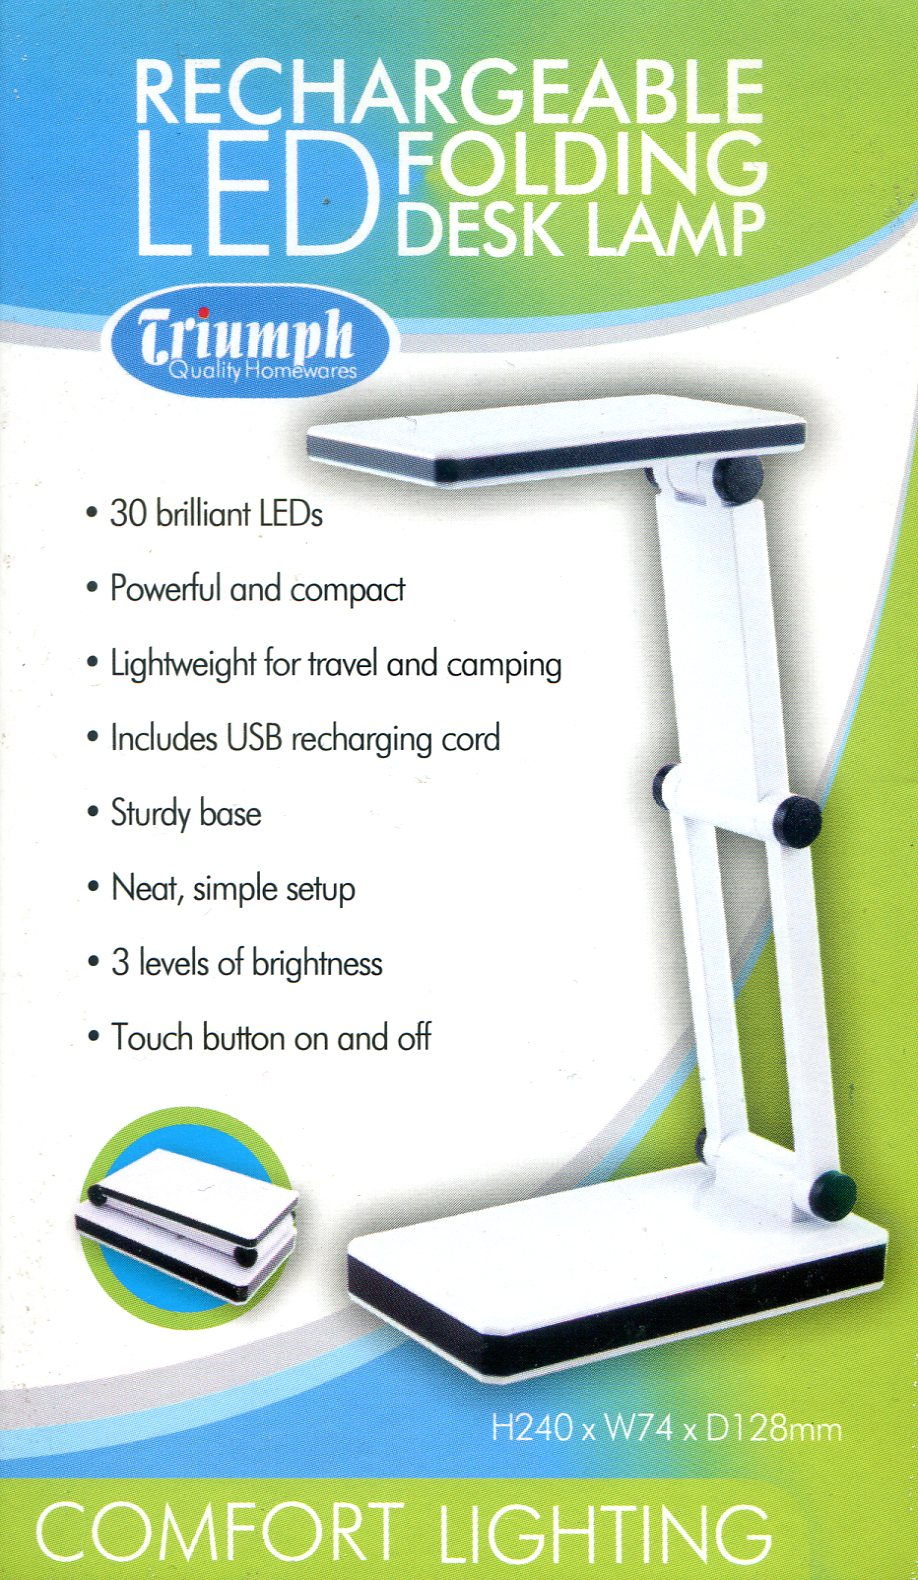 LED Rechargeable Folding Desk Lamp - White. Triumph Quality Homewares. OD188-W